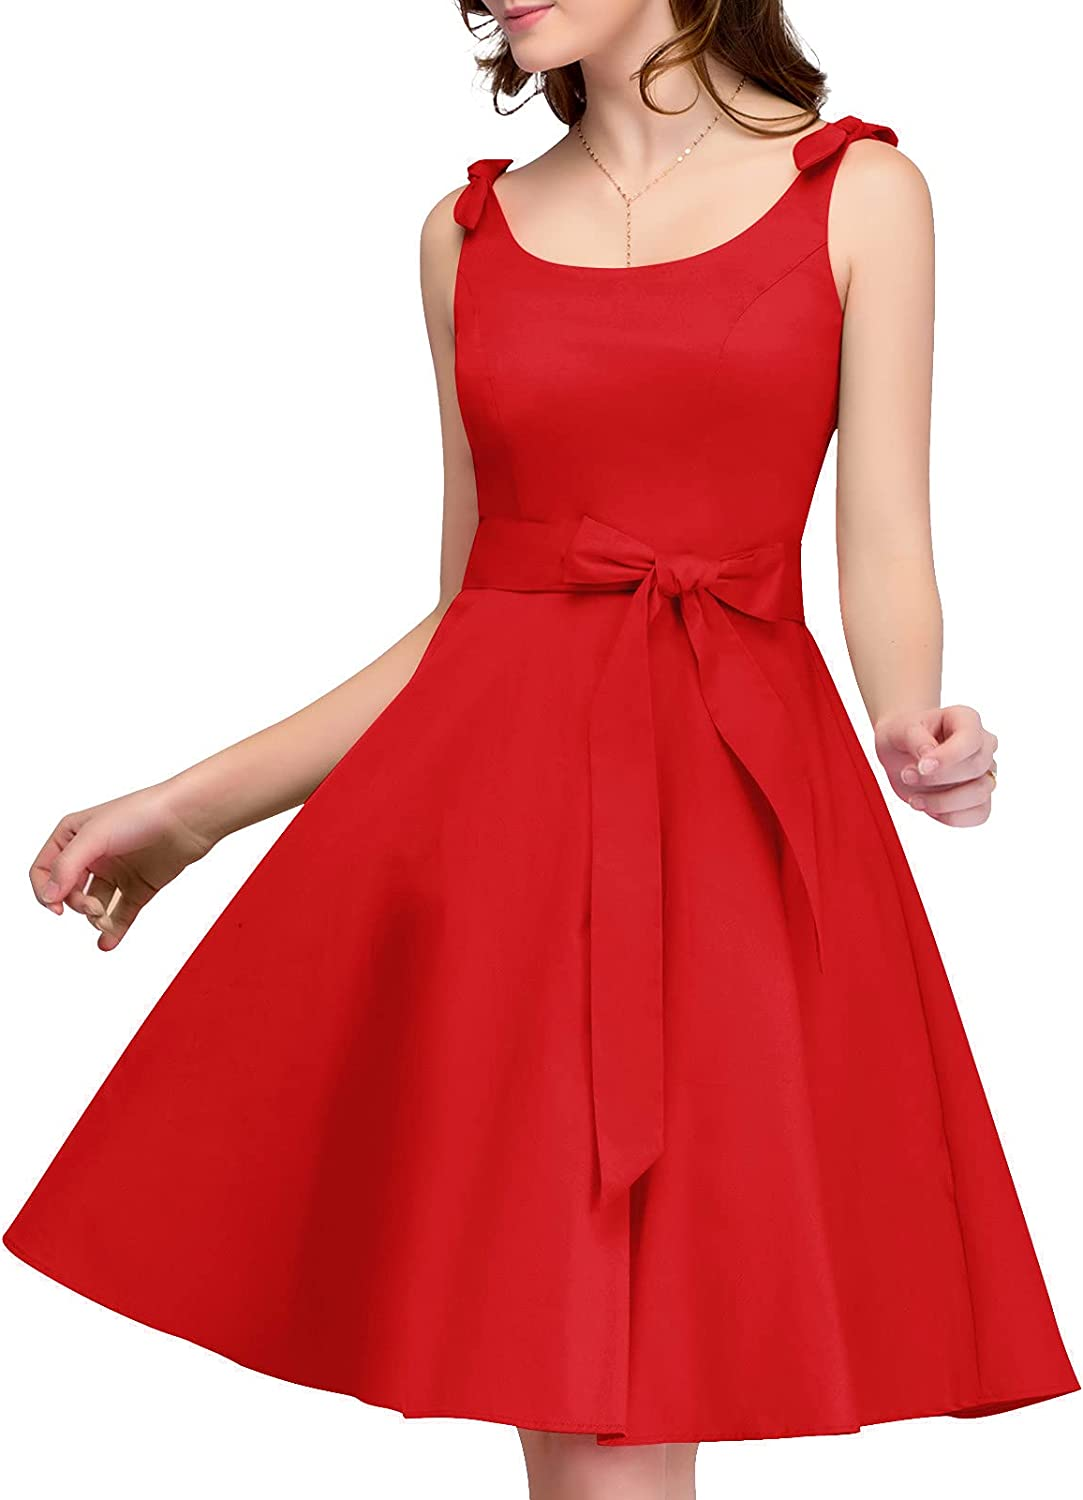 Ranking TOP2 Wedding Guest Dresses For Women Rockabilly 50s latest Vintage Cocktail